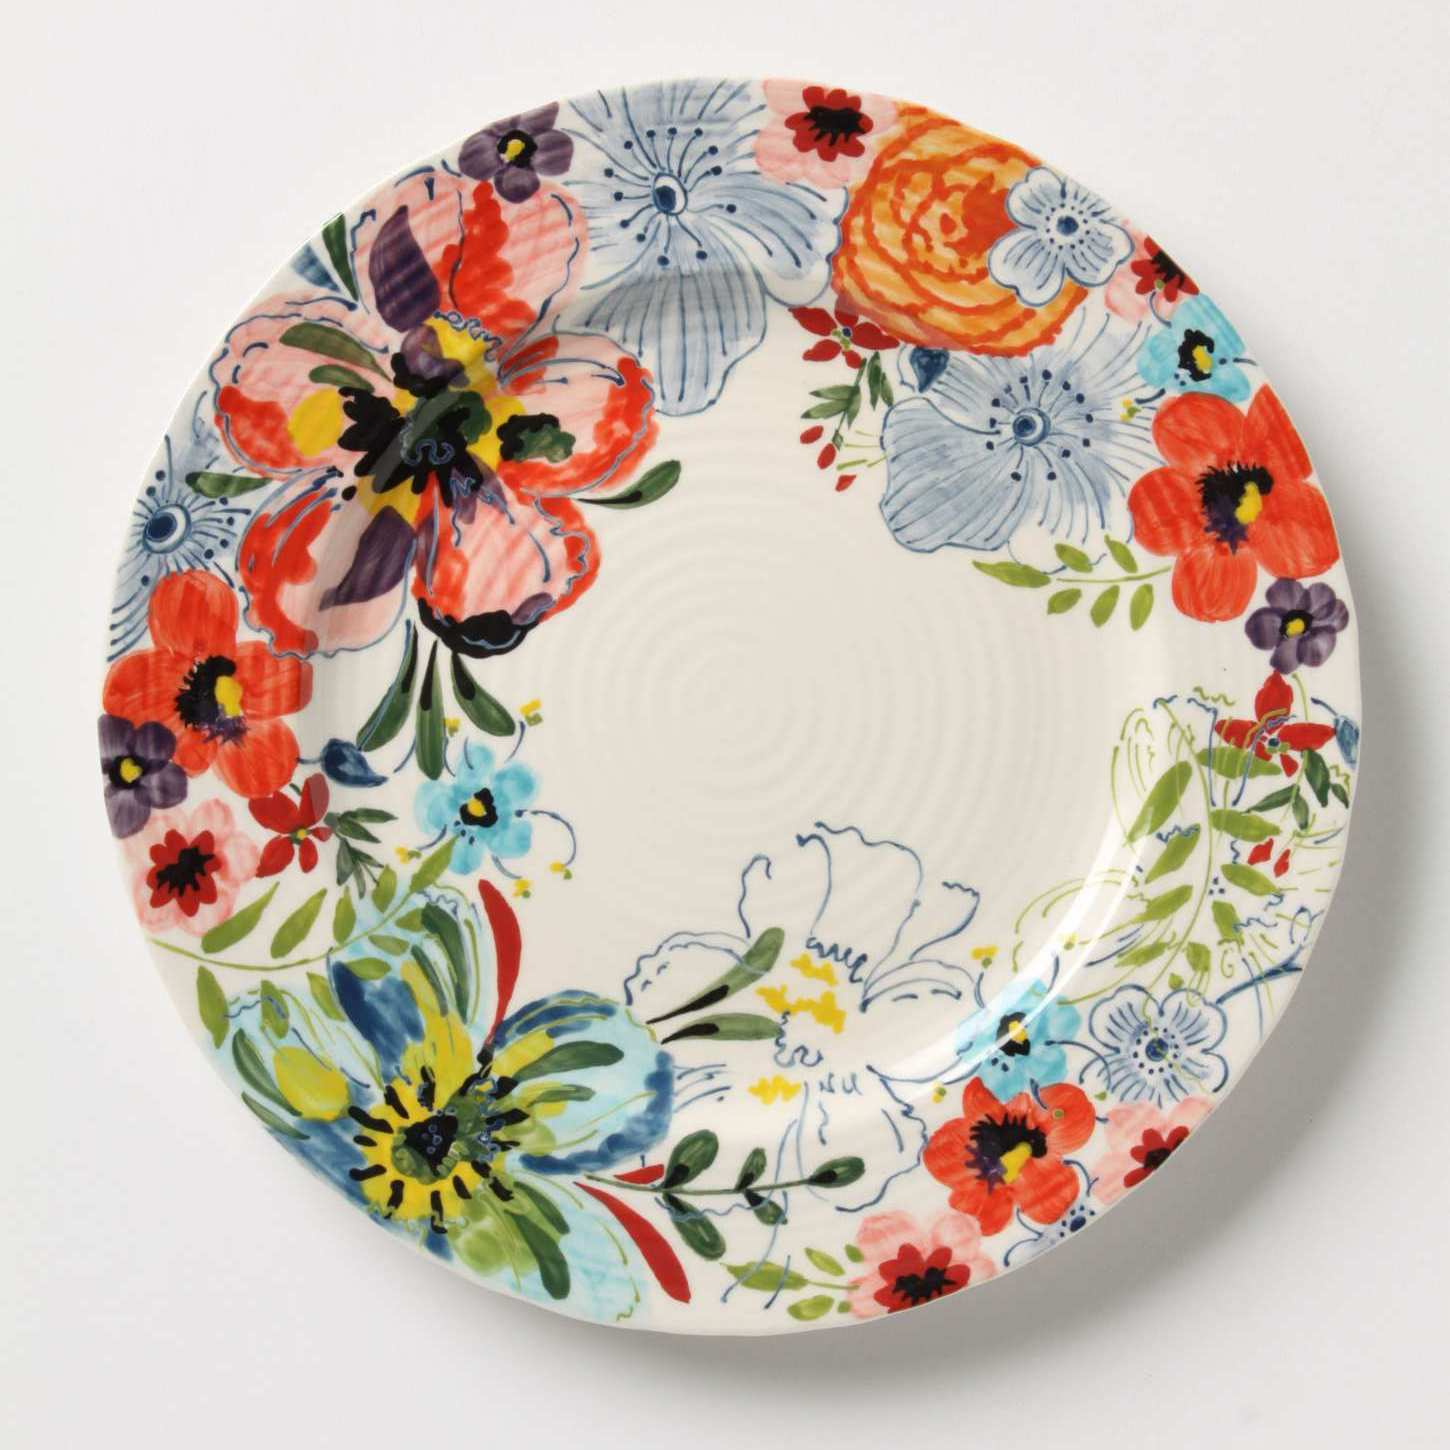 Decorative Dinner Plates Simple Wall Flowers Decorative Plates In The Dining Room  Swoon Worthy 2017